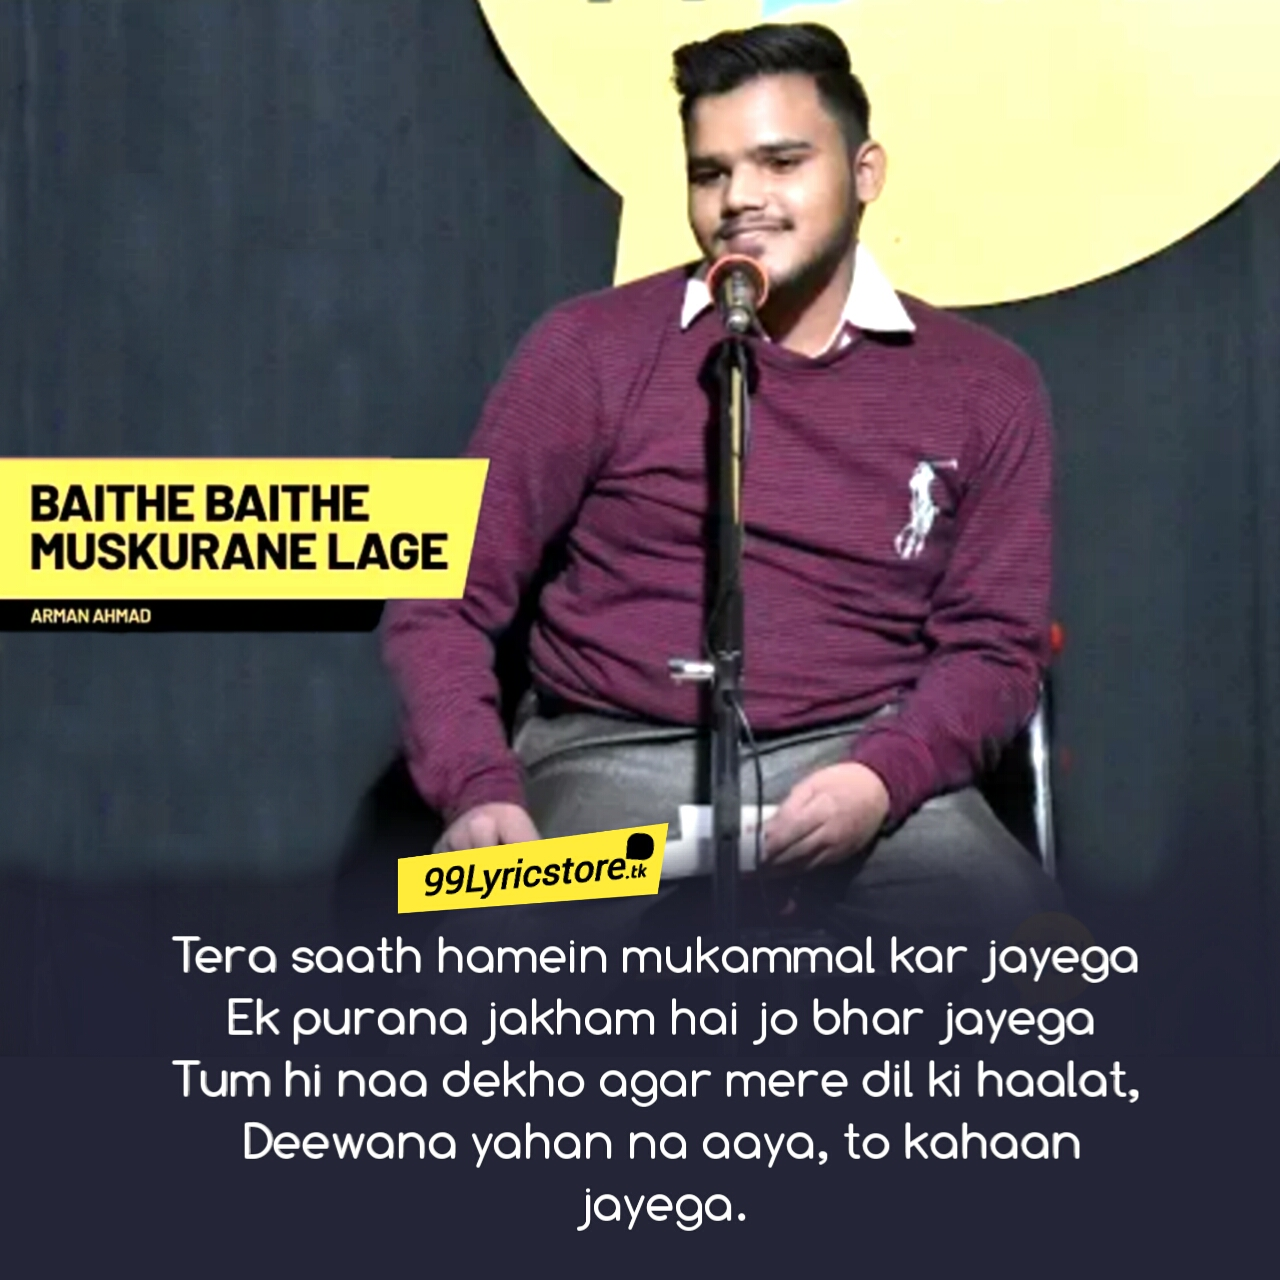 Baithe Baithe Muskurane Lage | Arman Ahmad | The Social House Poetry, The social house poetry in Hindi,  Baithe Baithe Muskurane Lage lyrics, Baithe Baithe Muskurane Lage Arman Ahmad poetry, The social house video, The social house image, love Quotes, love Shayari, Love ghazal, love poetry, Baithe baithe hi hum muskurane lage Teri surat chaand se milaane lage